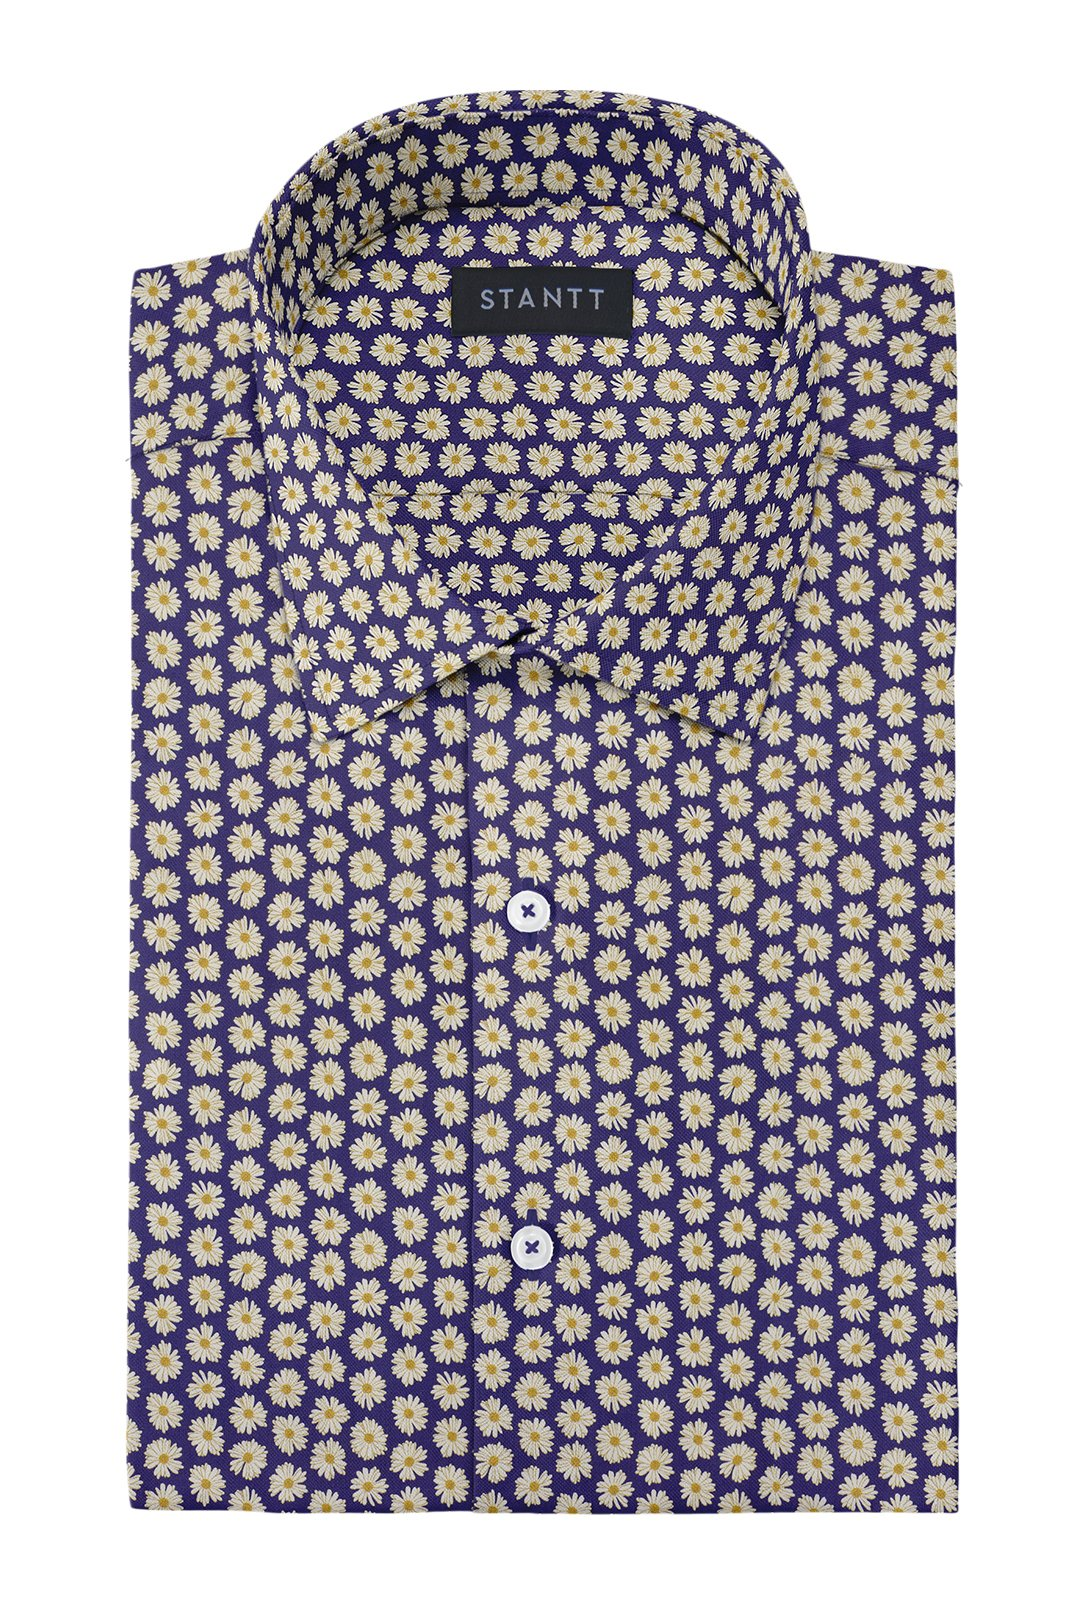 Daisy on Navy Printed Cotton: Modified-Spread Collar, French Cuff